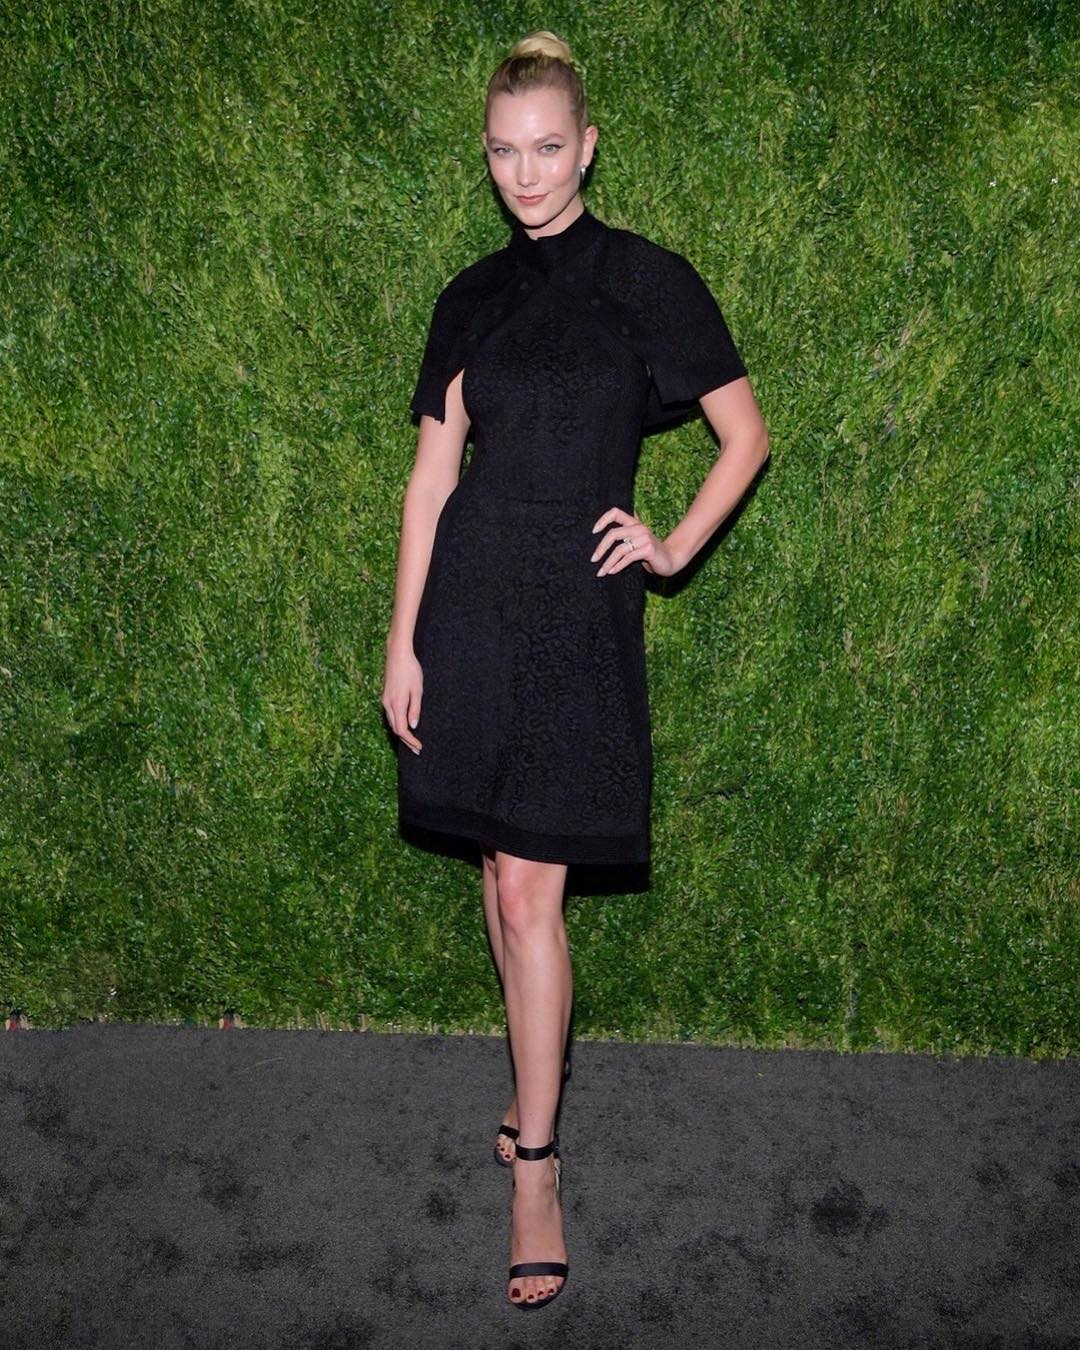 Karlie Kloss Wearing Black Bolero Dress By Brandon Maxwell 2019